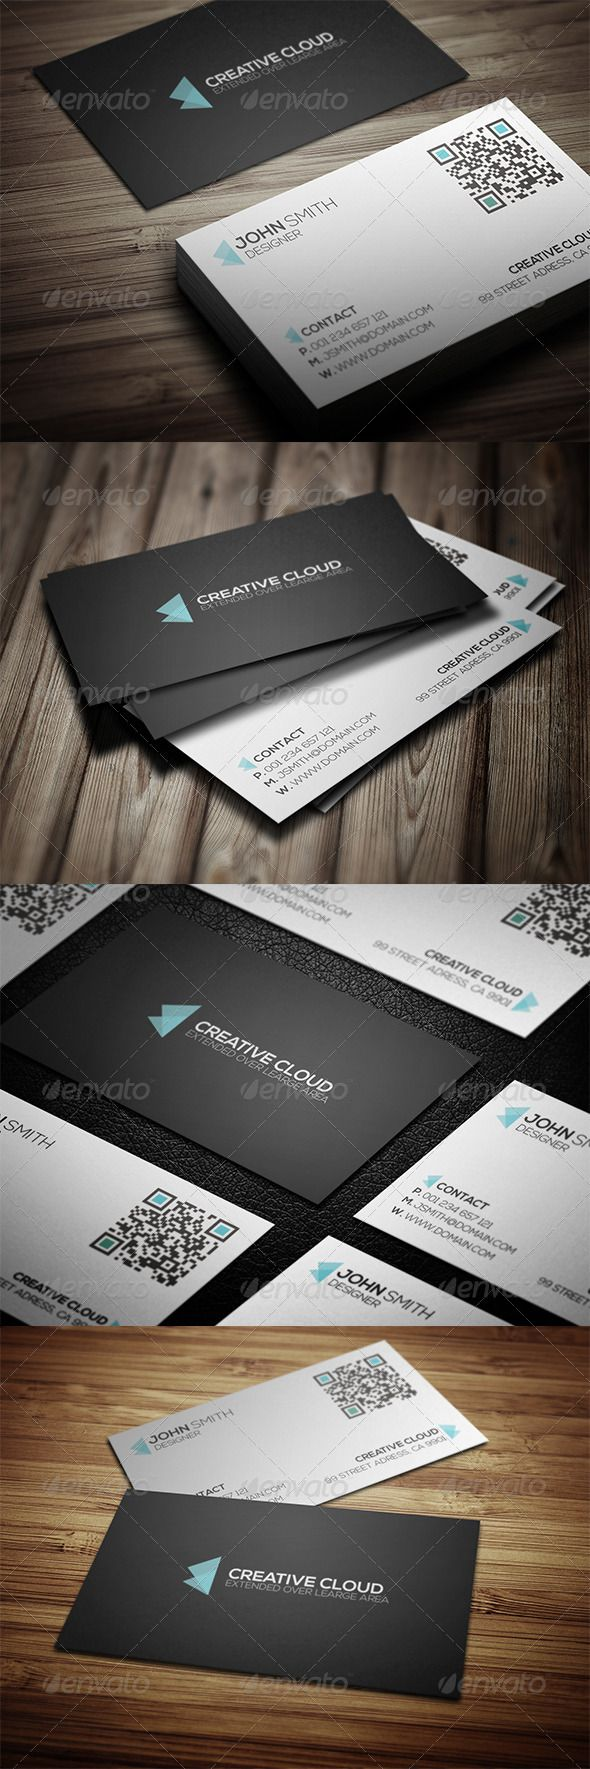 Prosuite Corporate Business Card Corporate business card